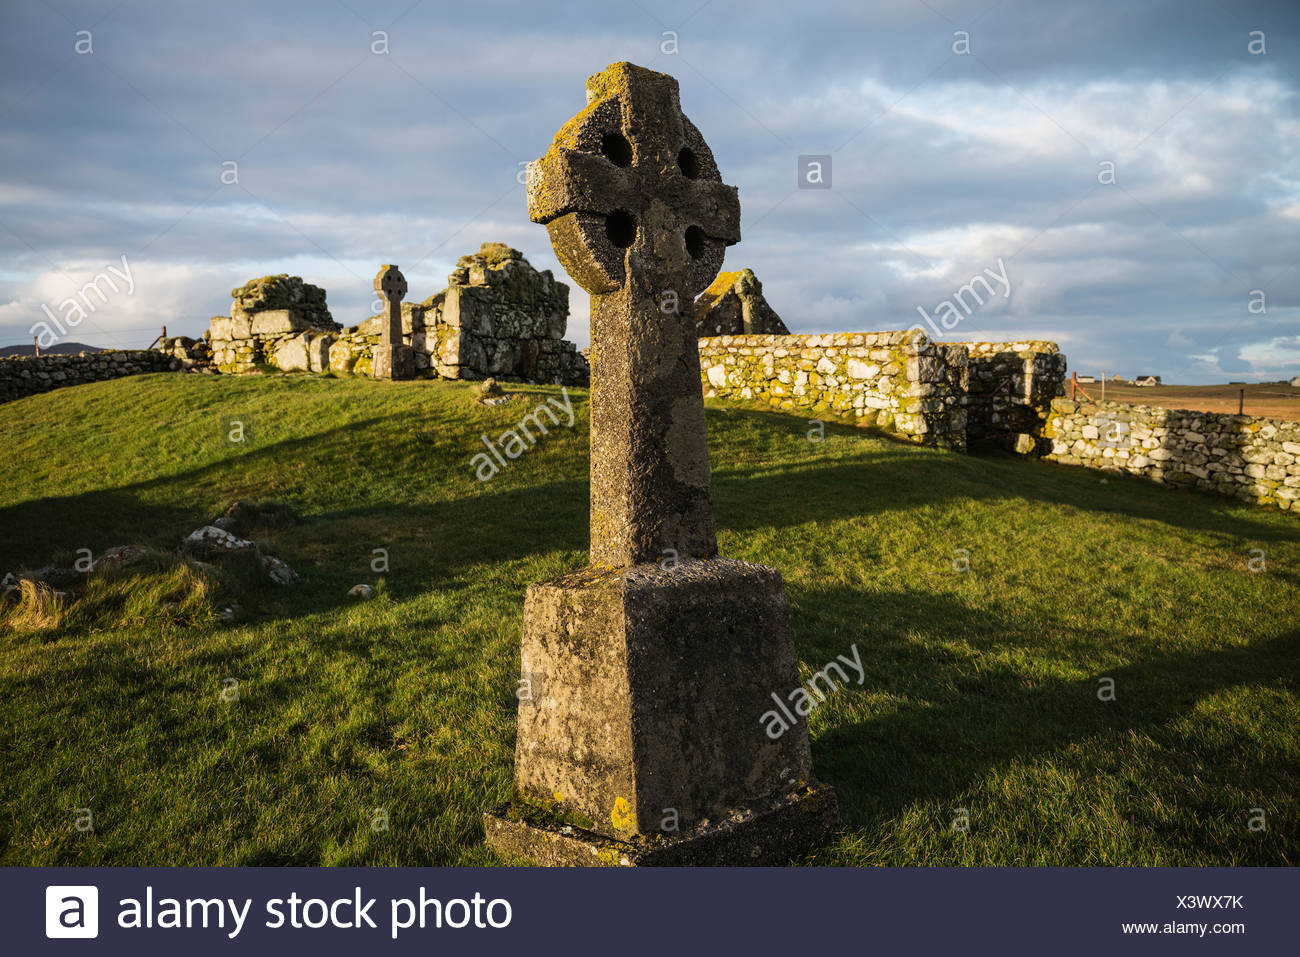 Tomb stone in cemetery, Howmore, South Uist, Outer Hebrides, Scotland - Stock Image